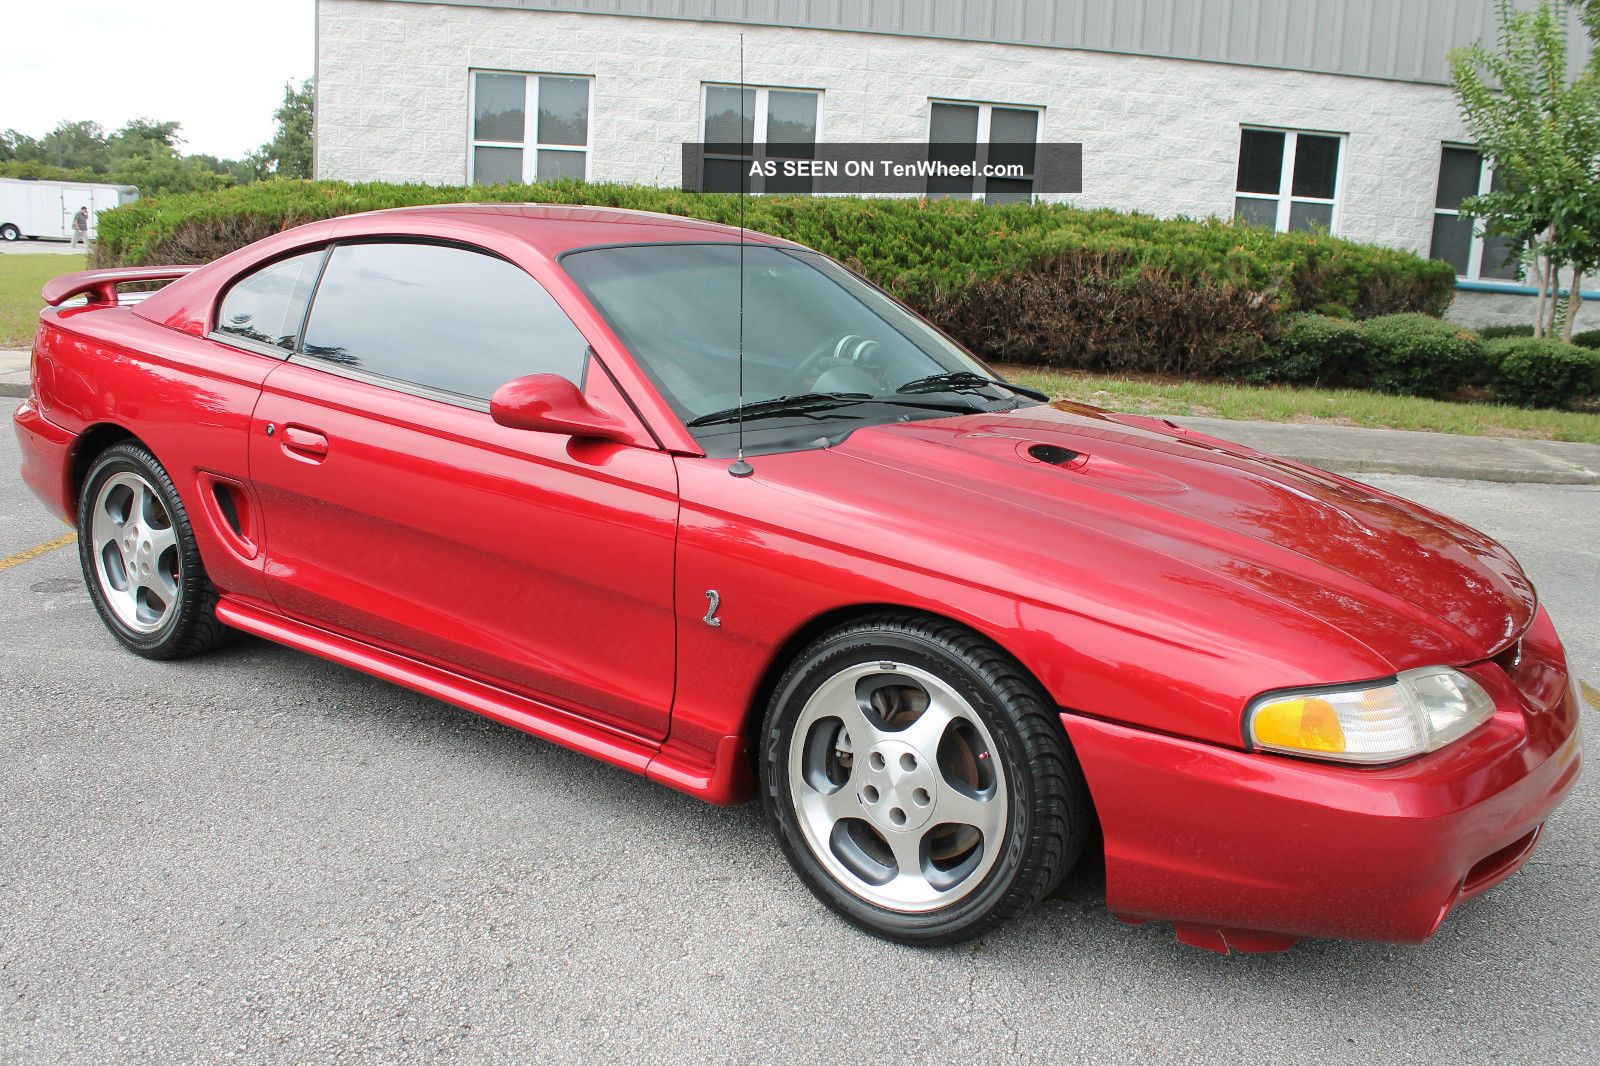 1996 Ford Mustang Svt Cobra - Red / Tan - Garaged - Fla - Kept - Lowest Mileage In The Usa